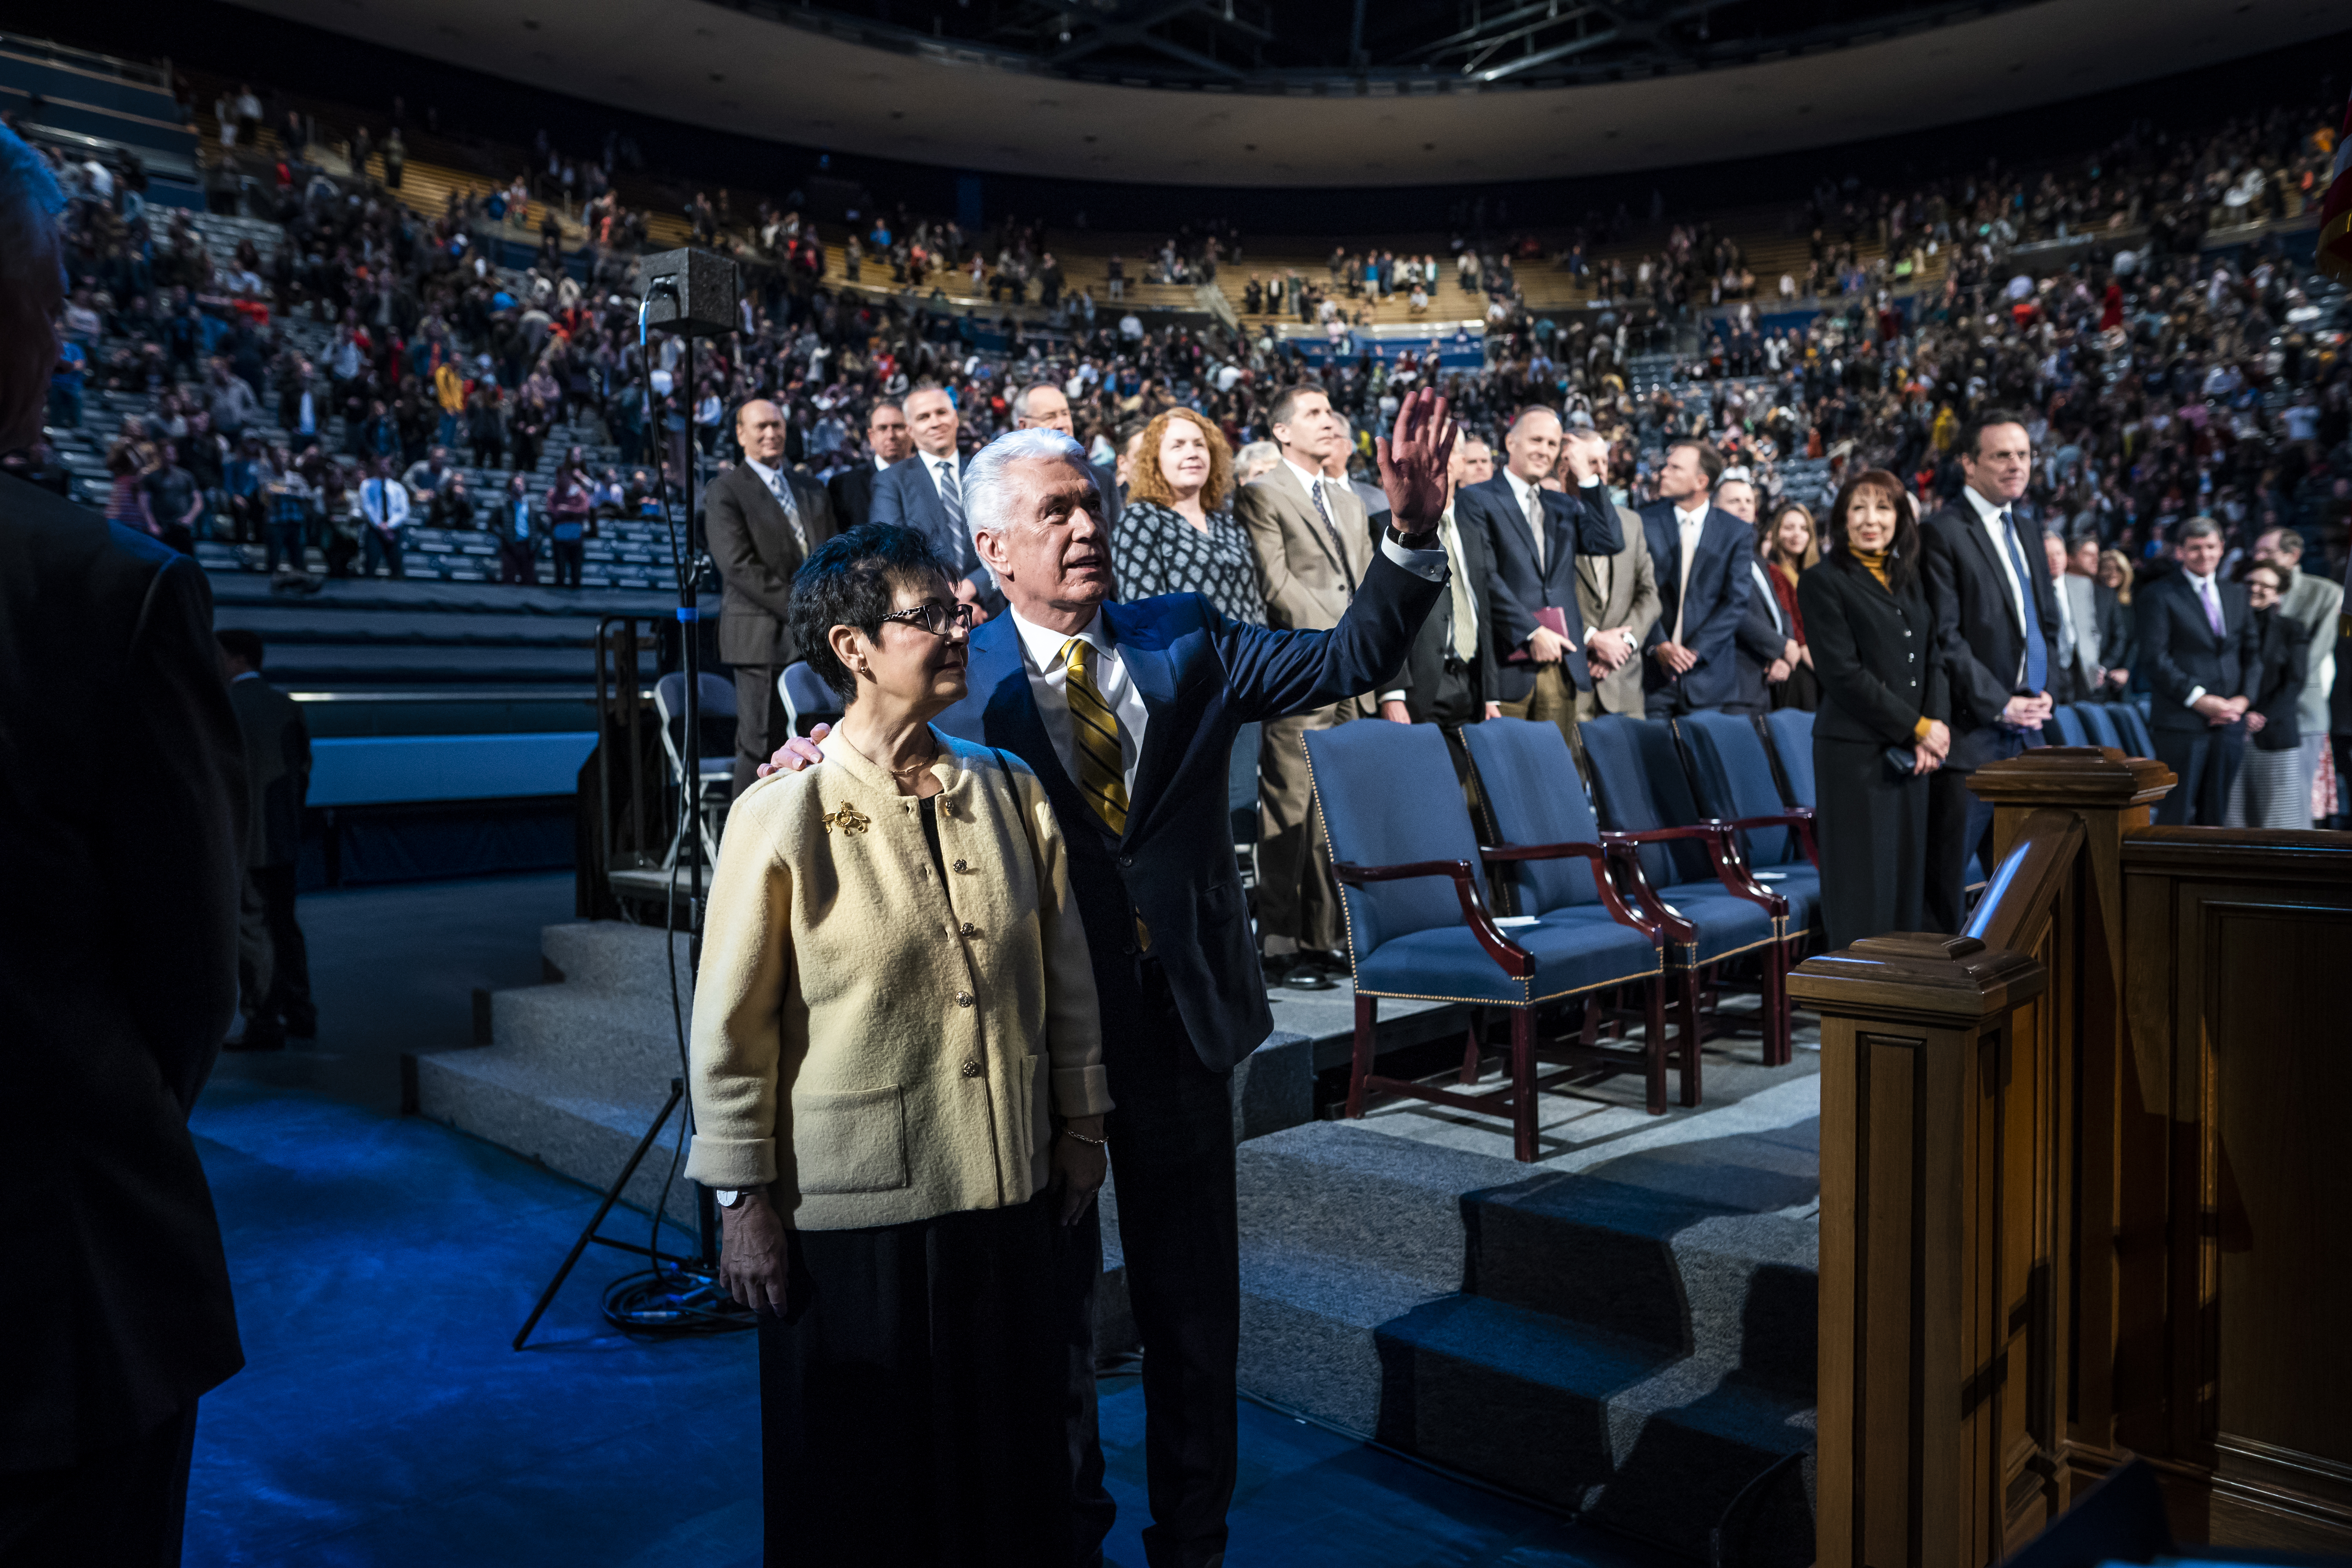 Elder Dieter F. Uchtdorf of the Quorum of the Twelve Apostles with his wife Harriet R. Uchtdorf following a devotional on the BYU campus in Provo, Utah on Tuesday, Jan. 15, 2019.